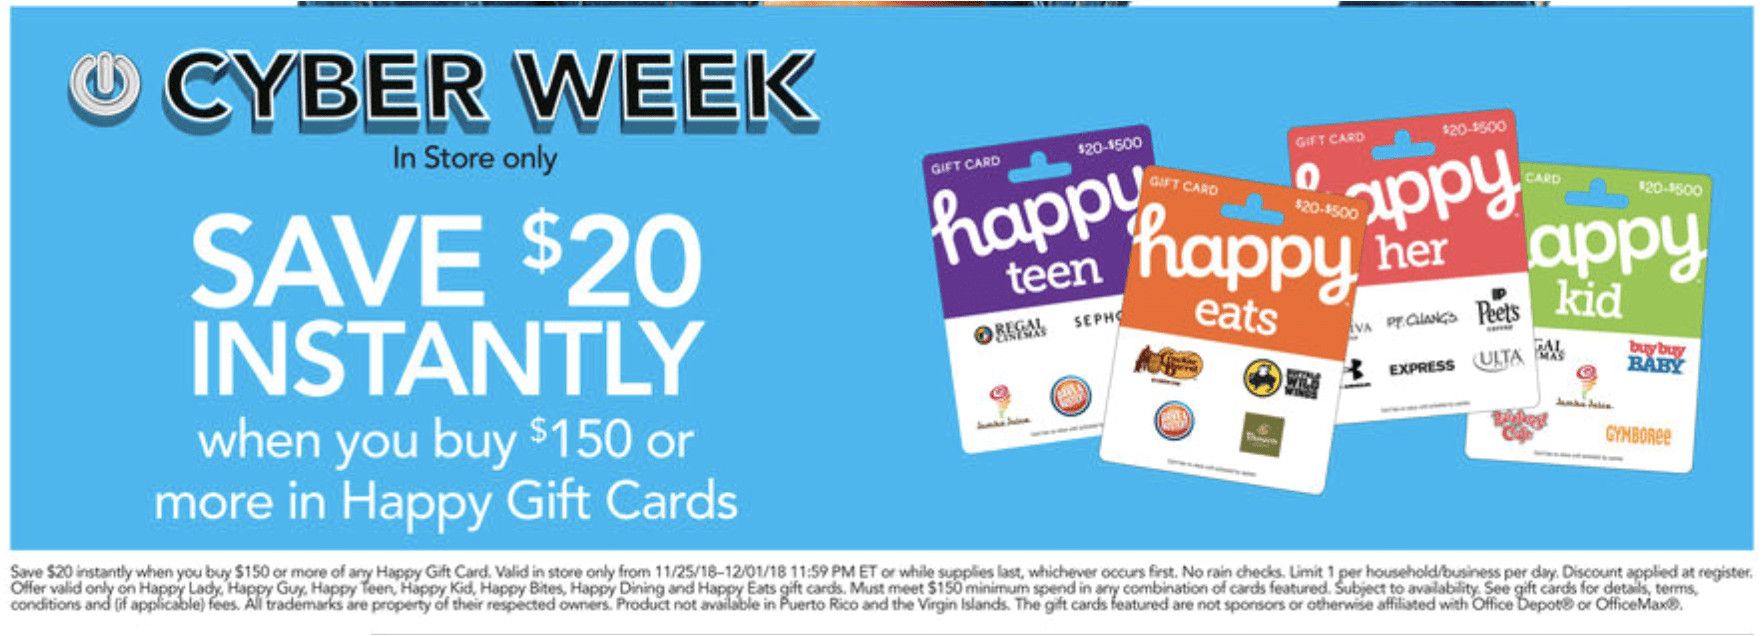 office depot is offering a 20 instant discount when you buy 150 or more in happy gift cards